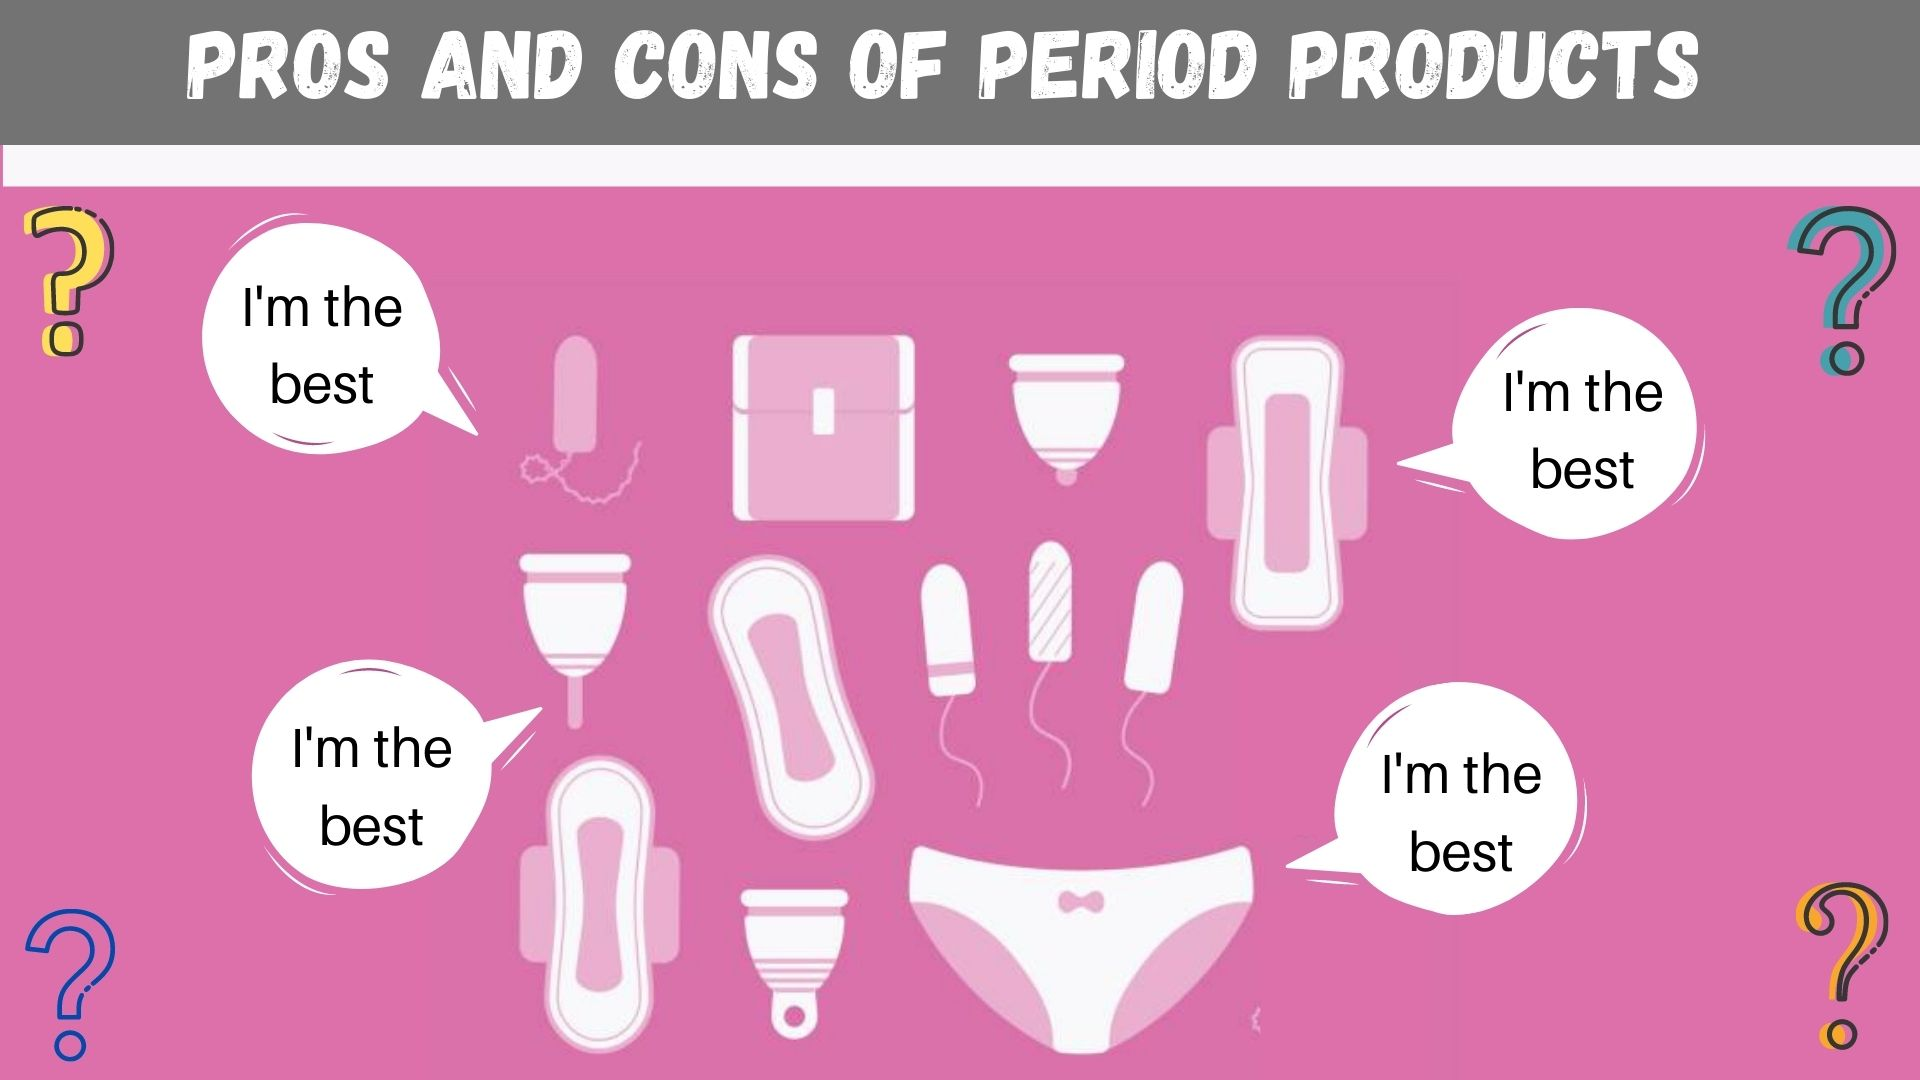 period products- pros and cons